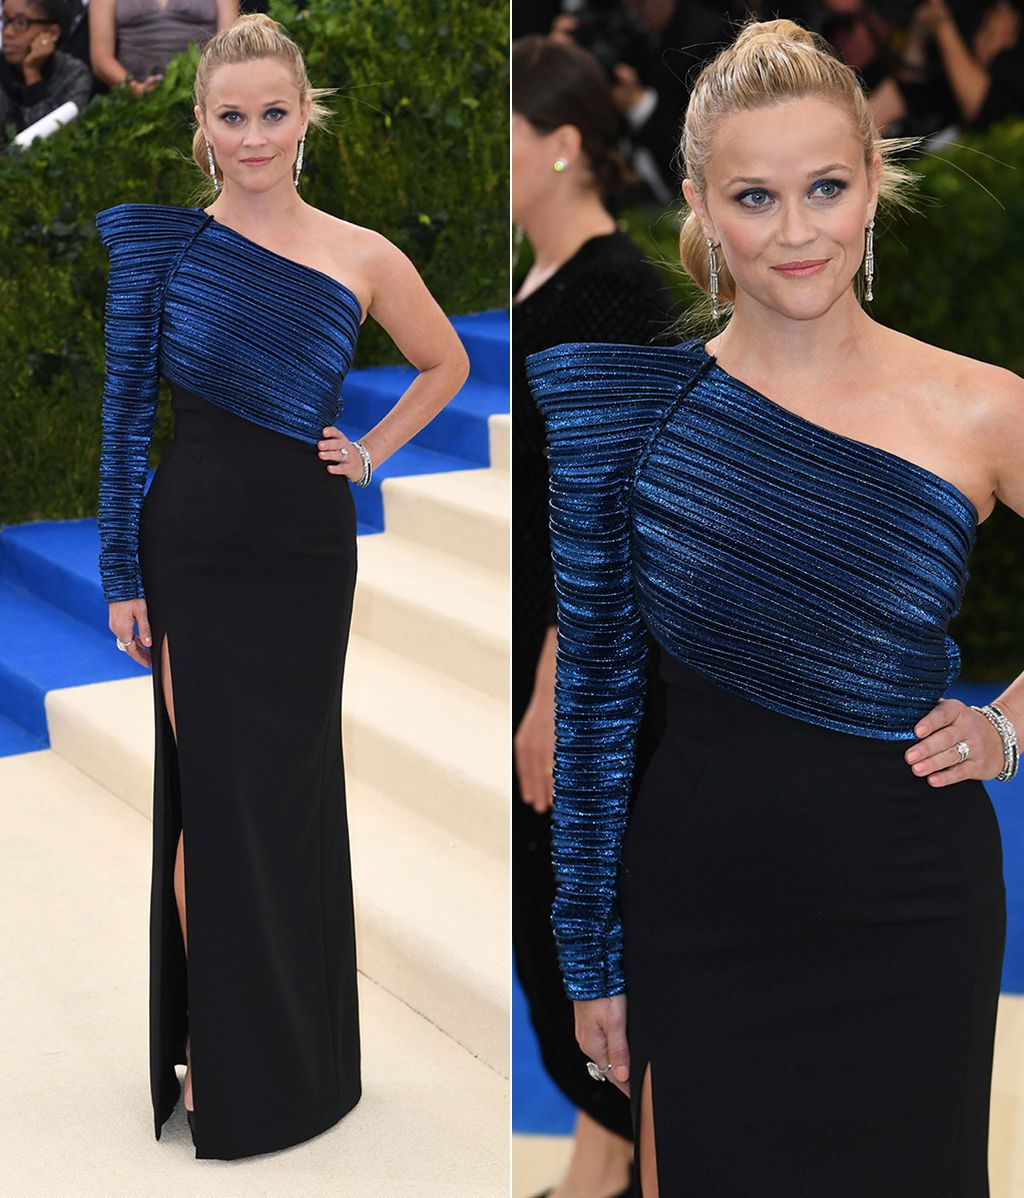 Reese Witherspoon con vestido de Thierry Mugler